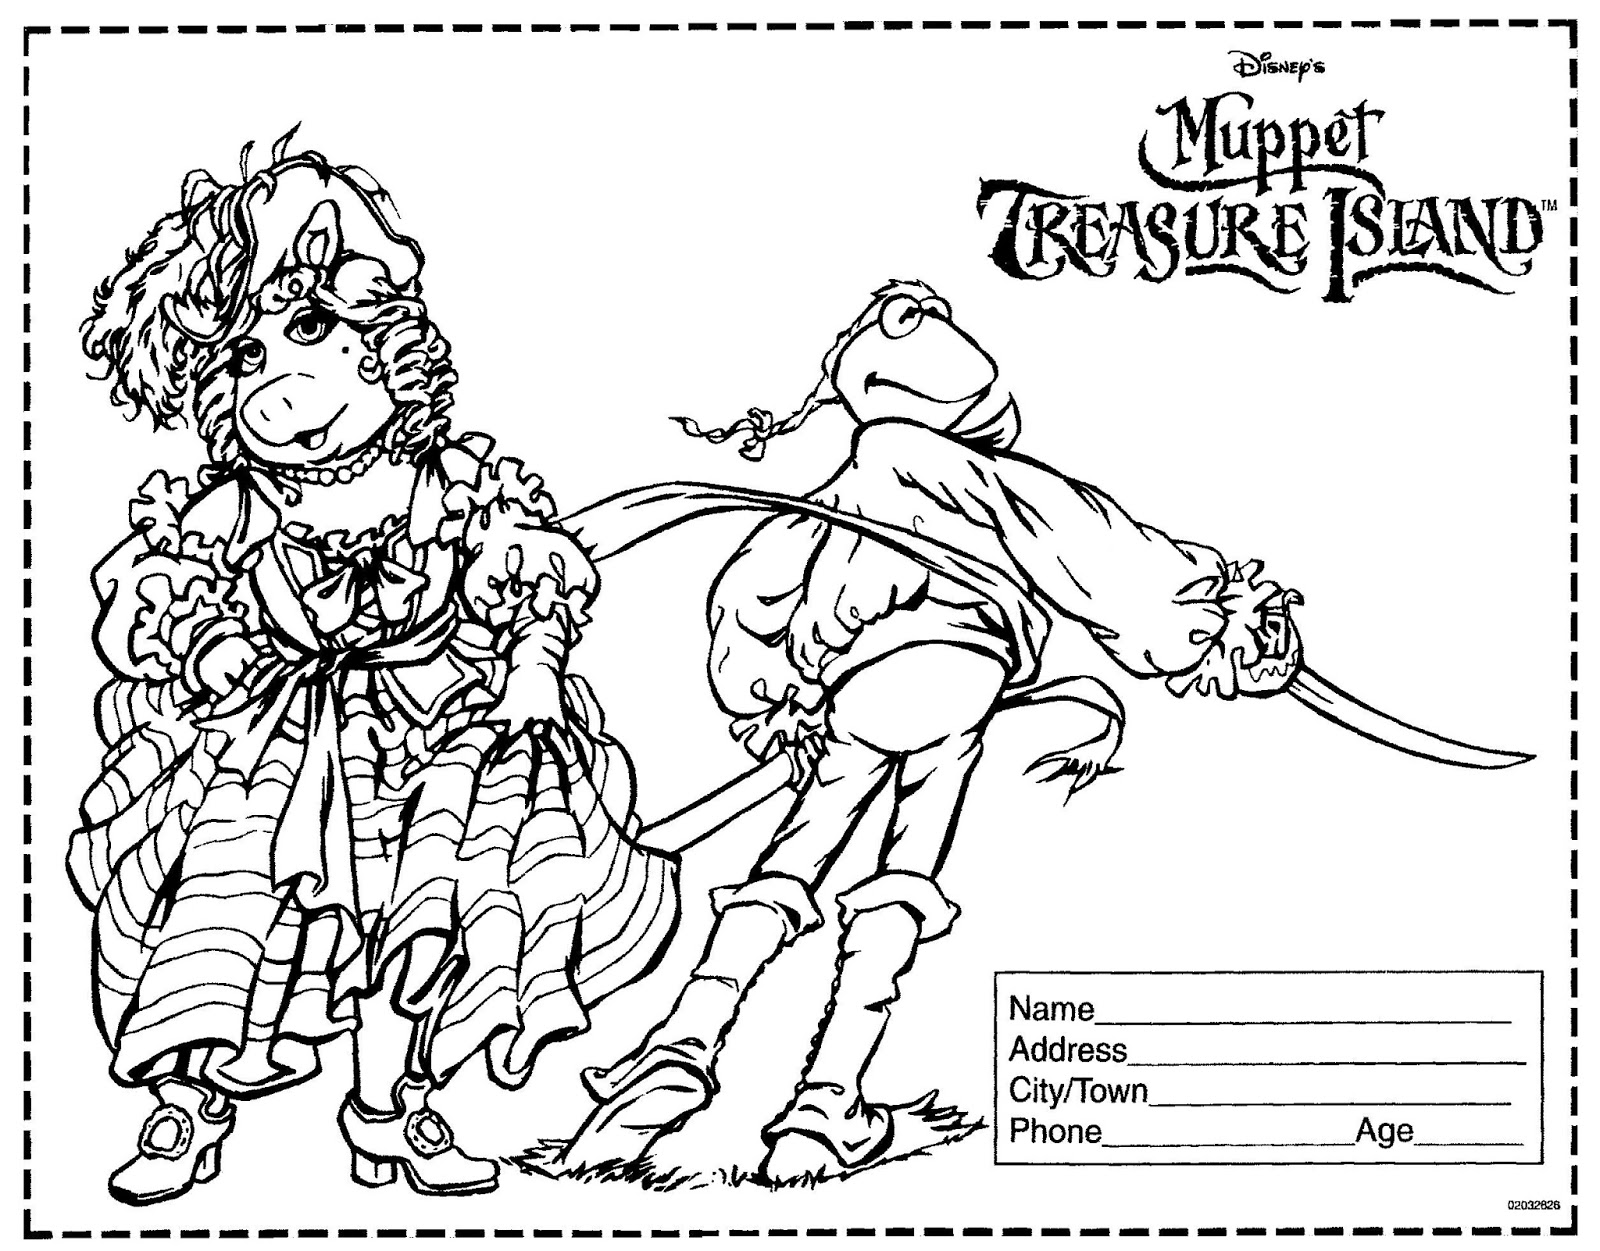 Coloring Pages Treasure Island Coloring Pages treasure island coloring pages eassume com free kids pages